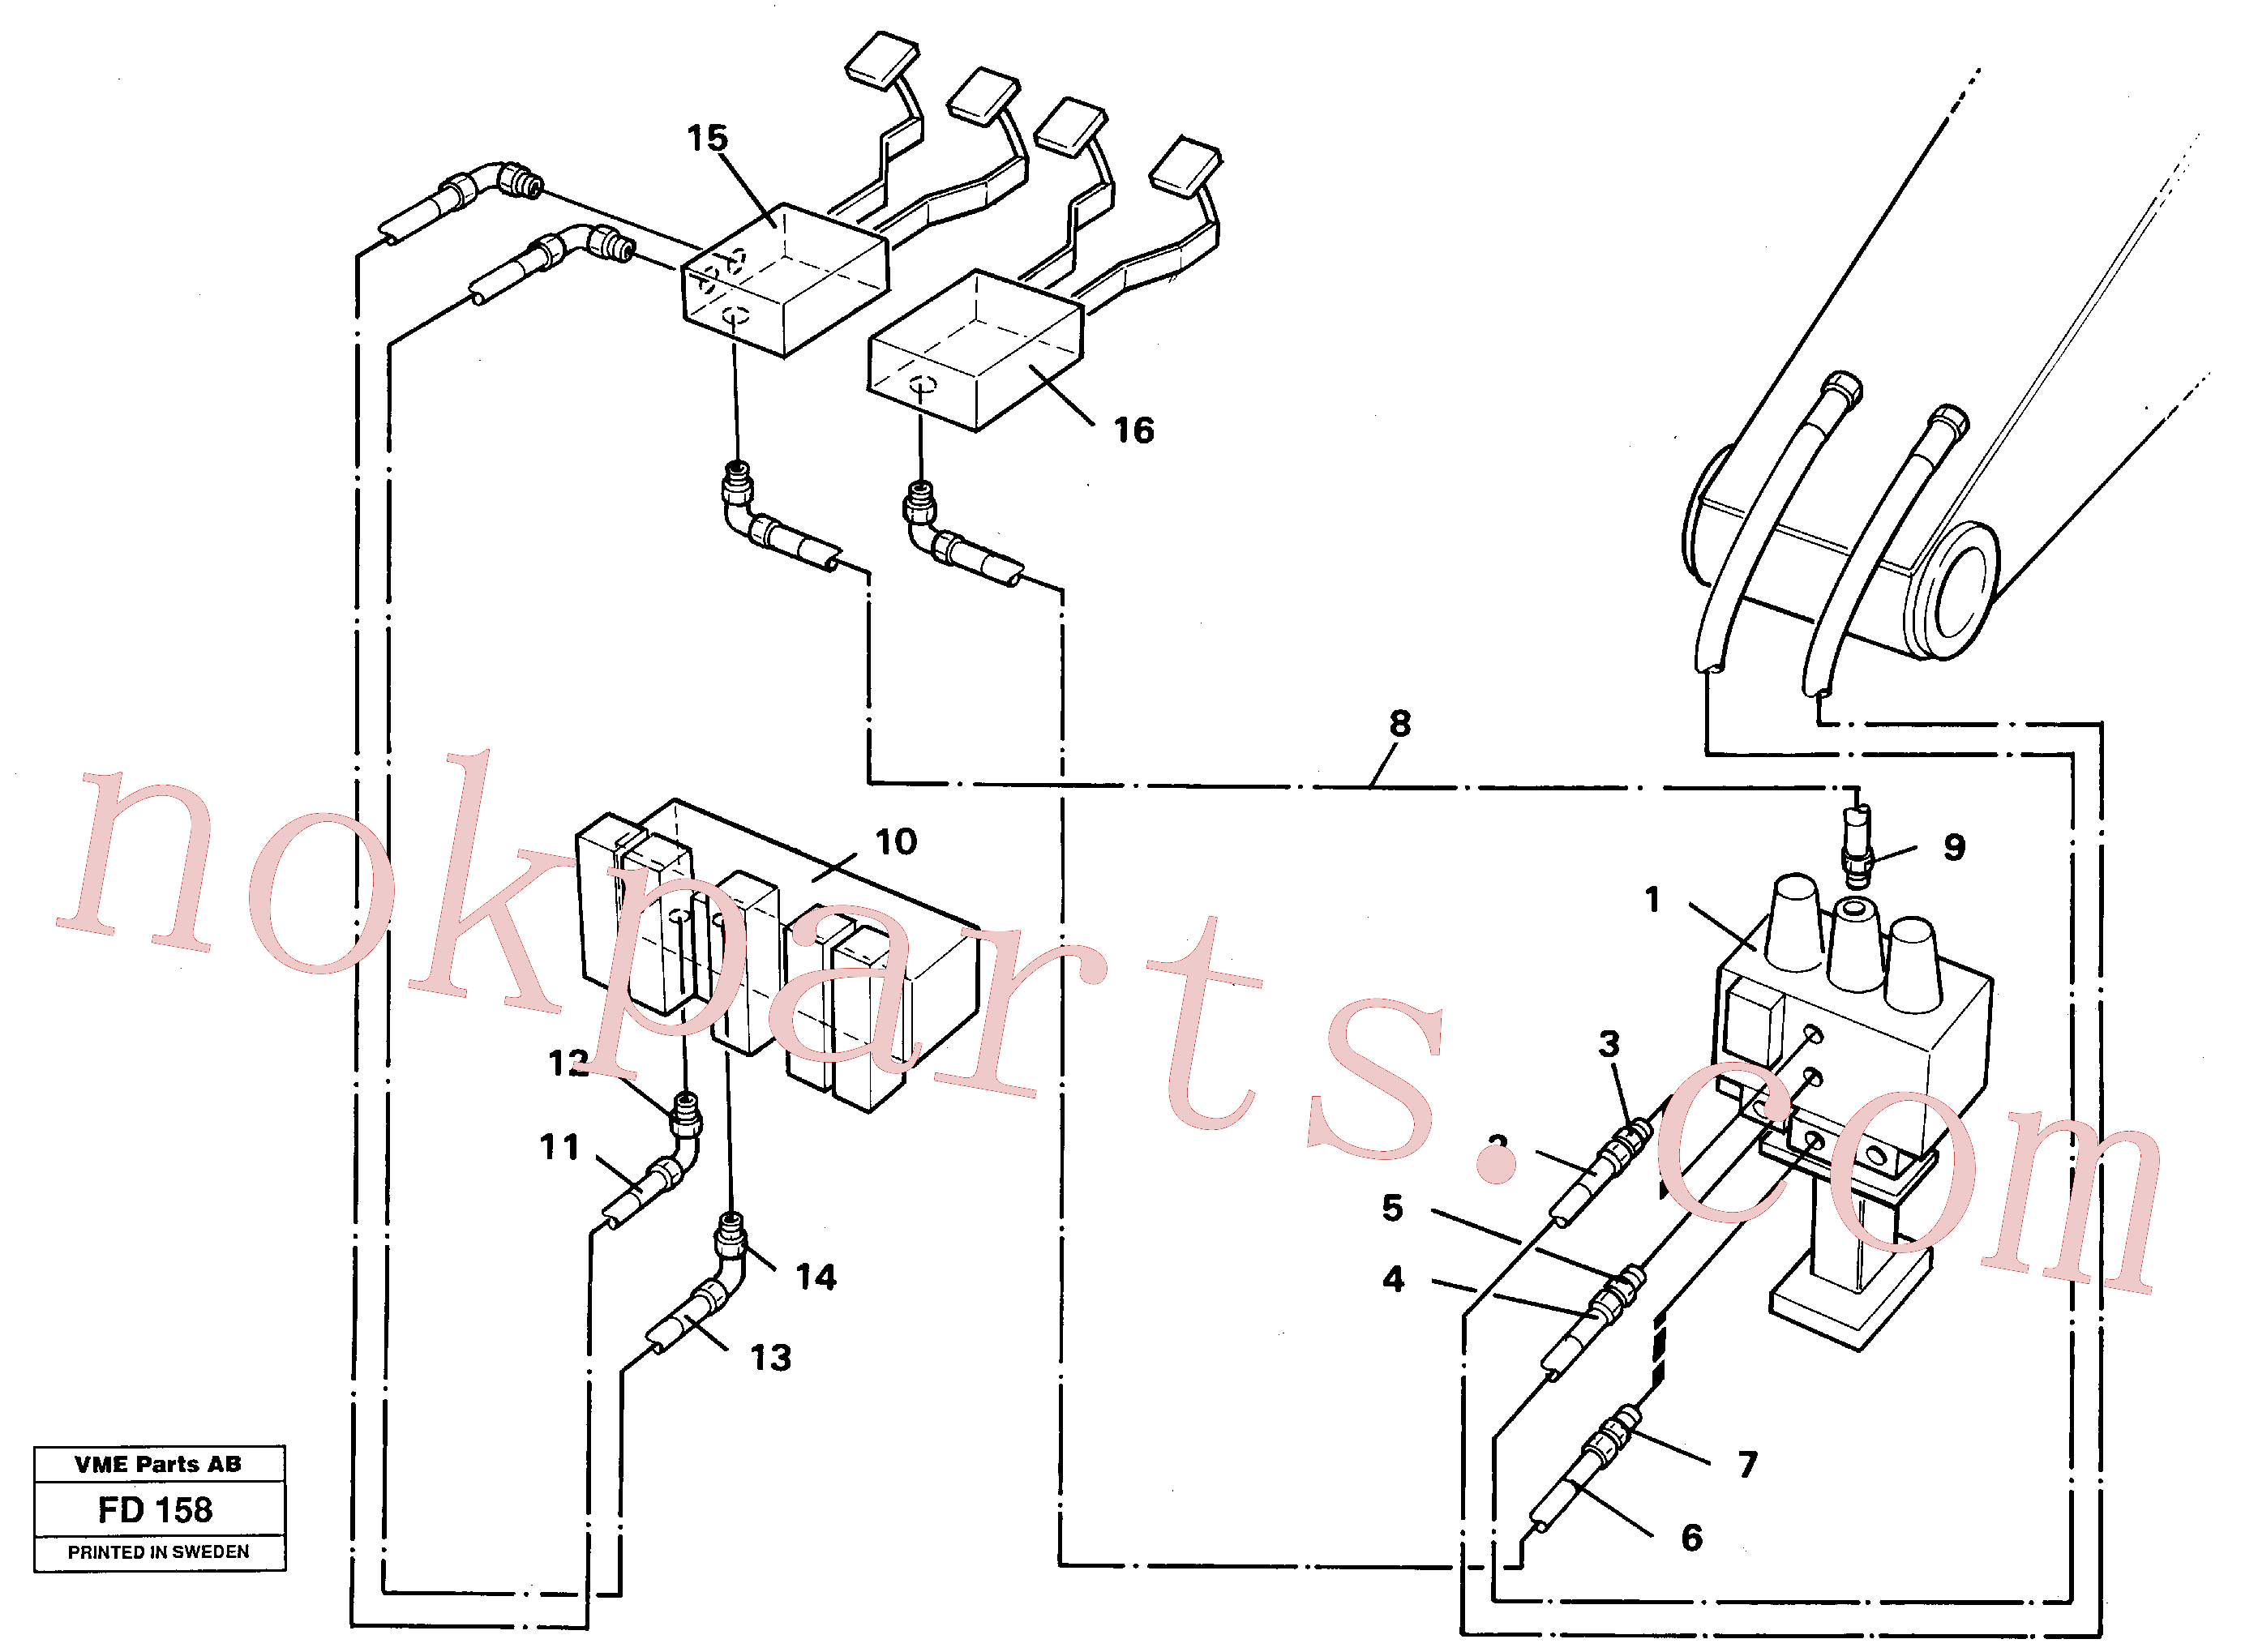 VOE14213152 for Volvo Slope/grab equipment, base machine(FD158 assembly)